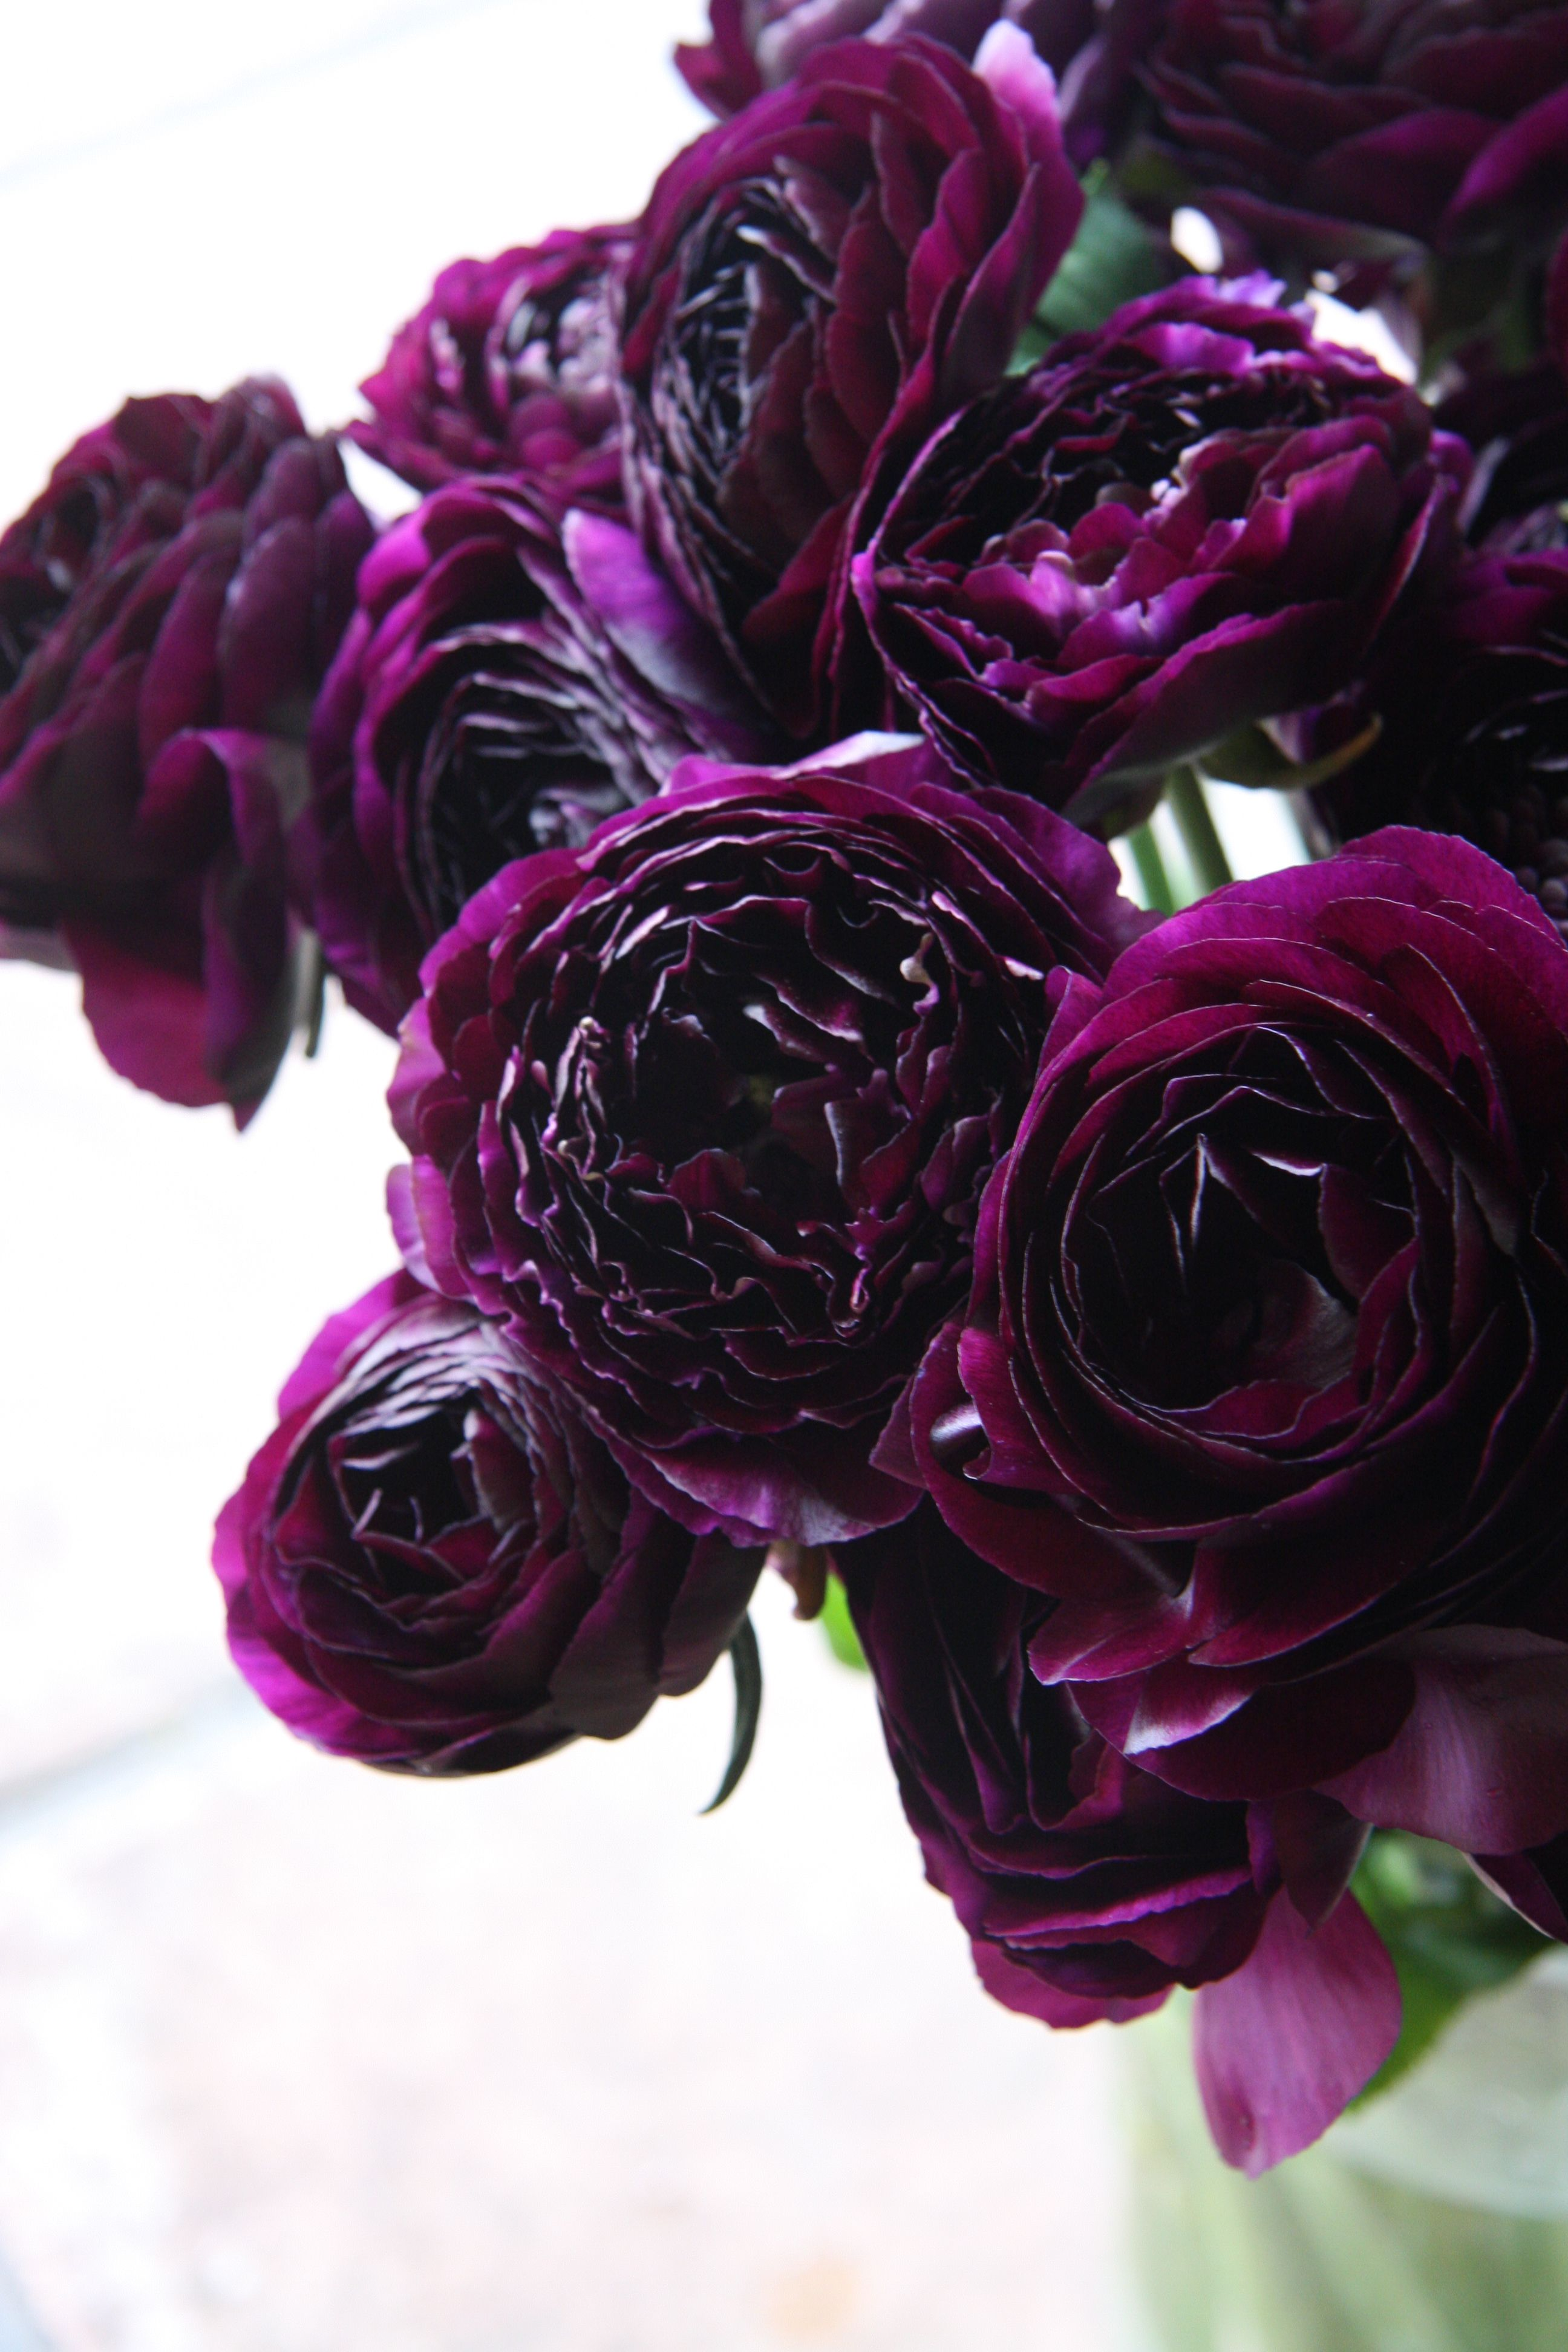 Sultry dark floral wedding ideas to spice things up live in color love dark colored flowers izmirmasajfo